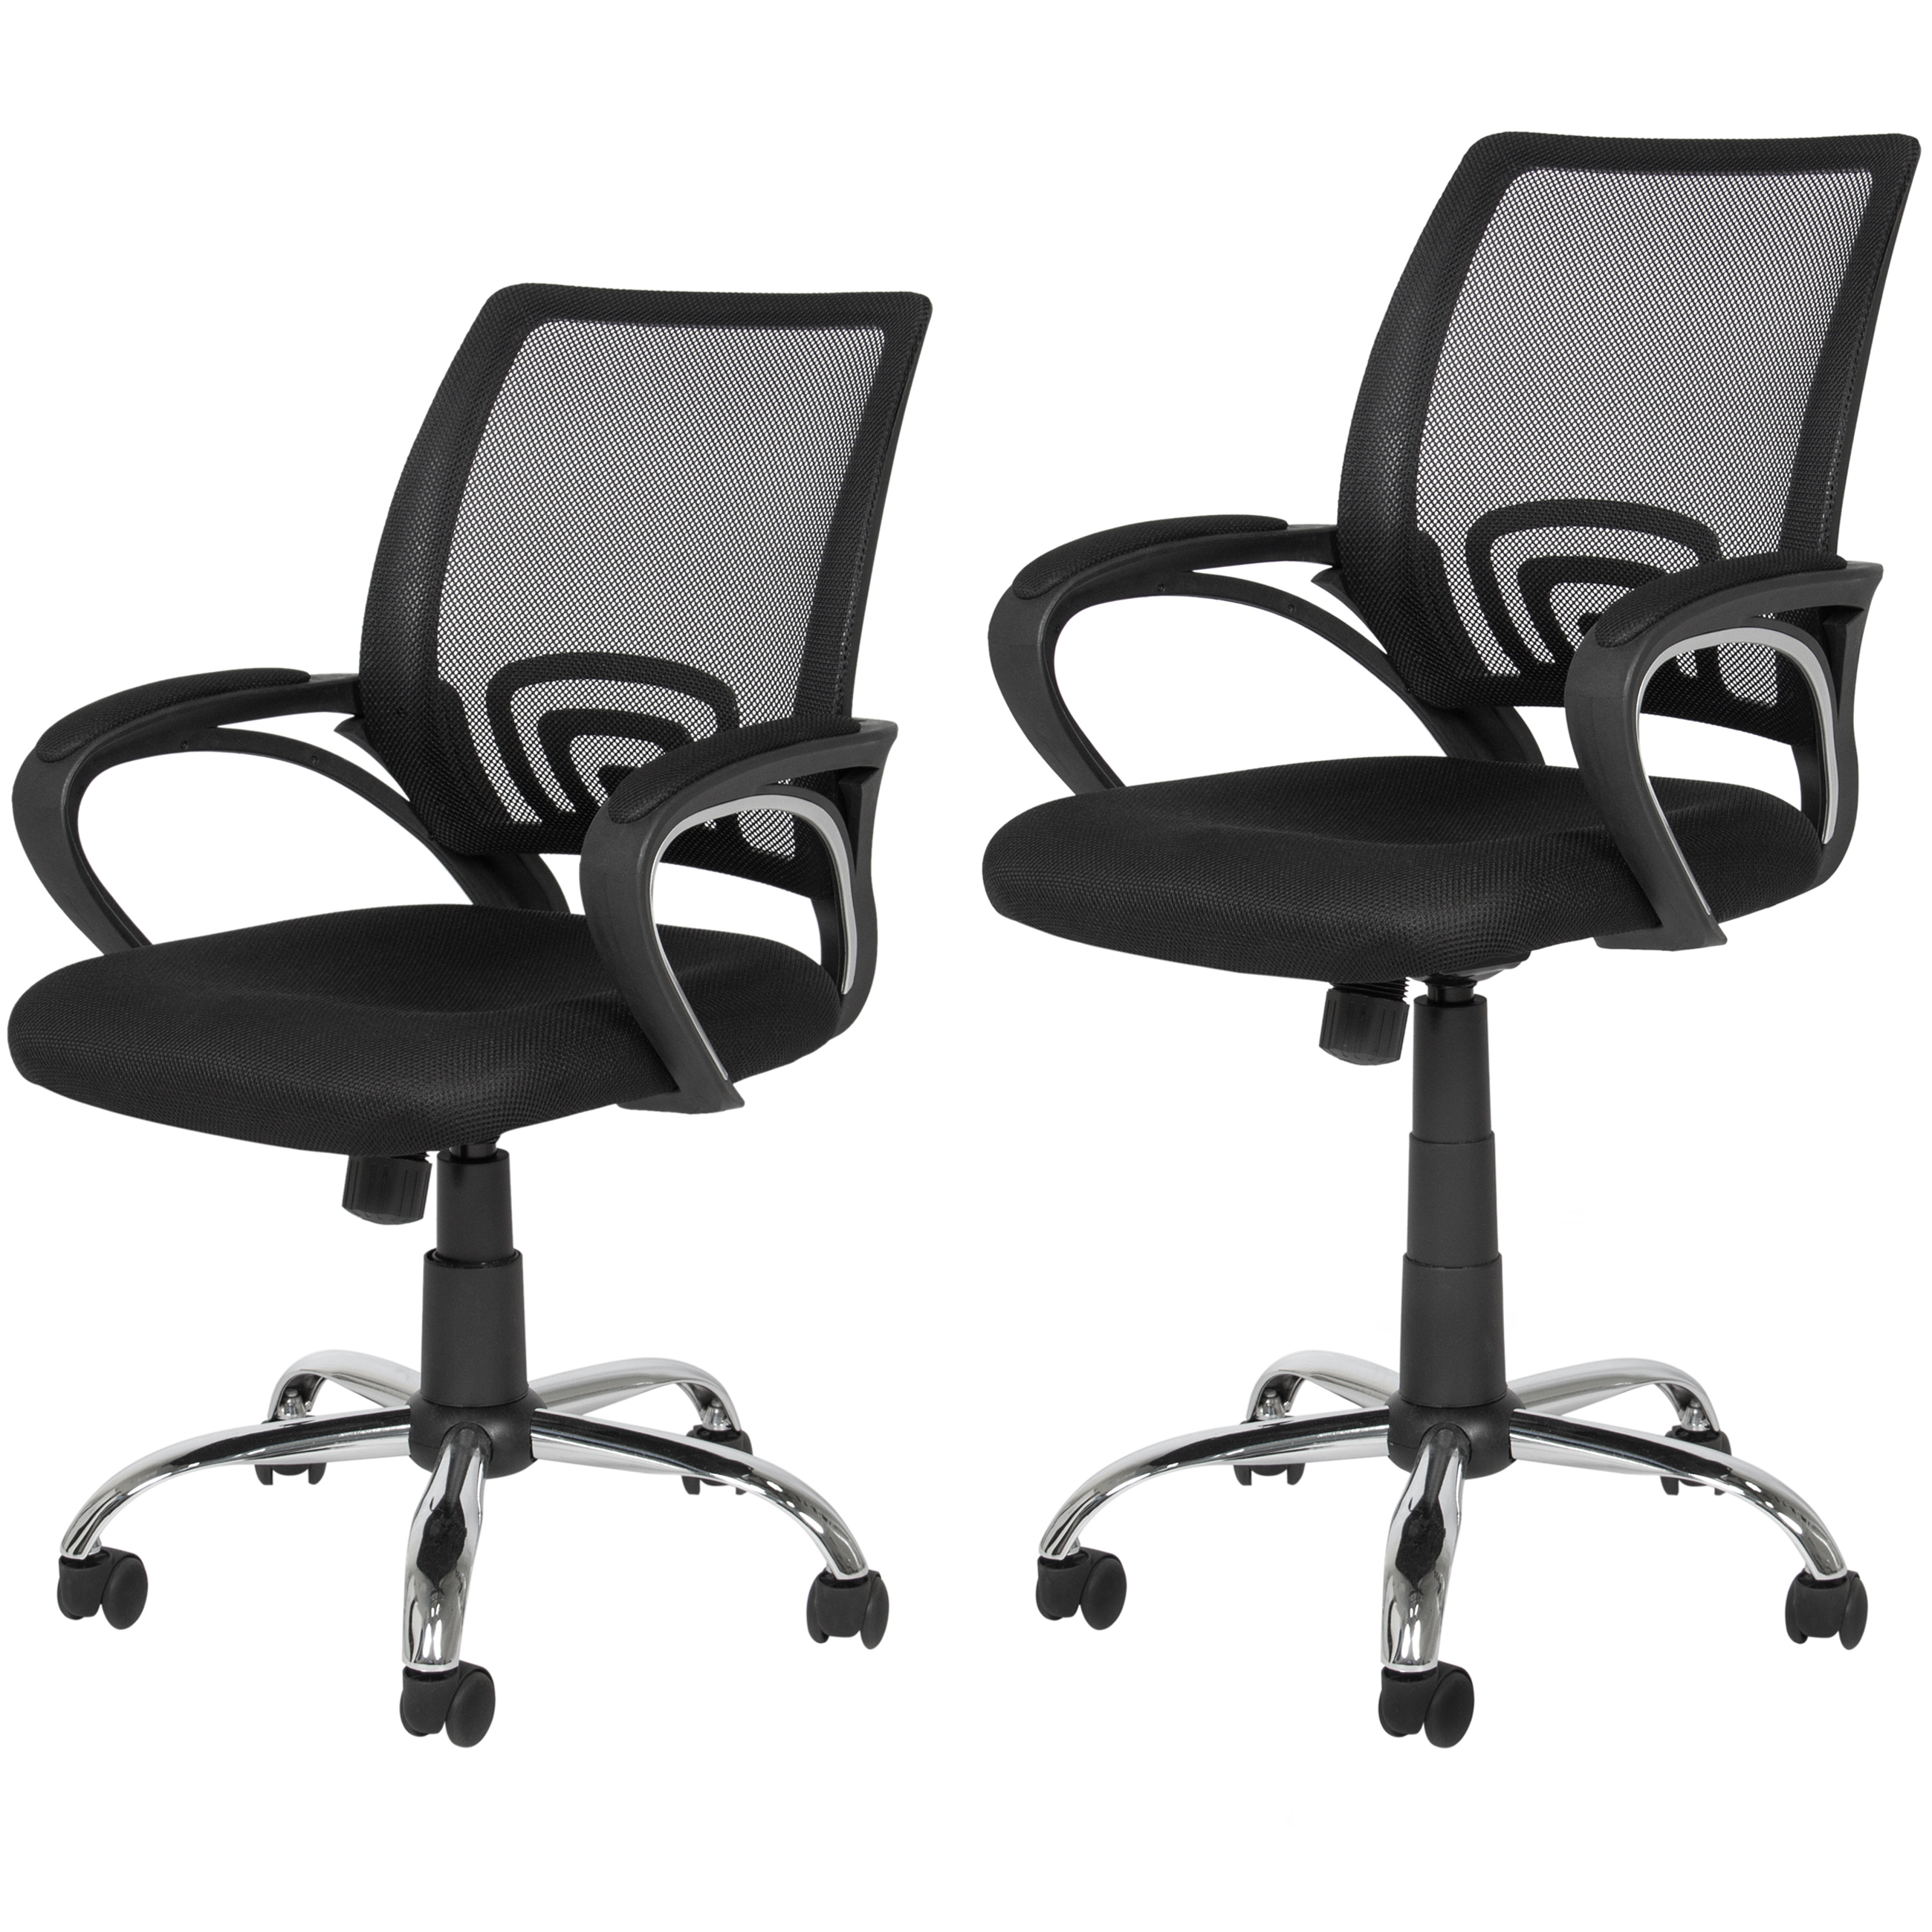 concept racing gaming chair office fixed trends computer officechairs amazing furniture home and modern best for of ergonomic picture seat